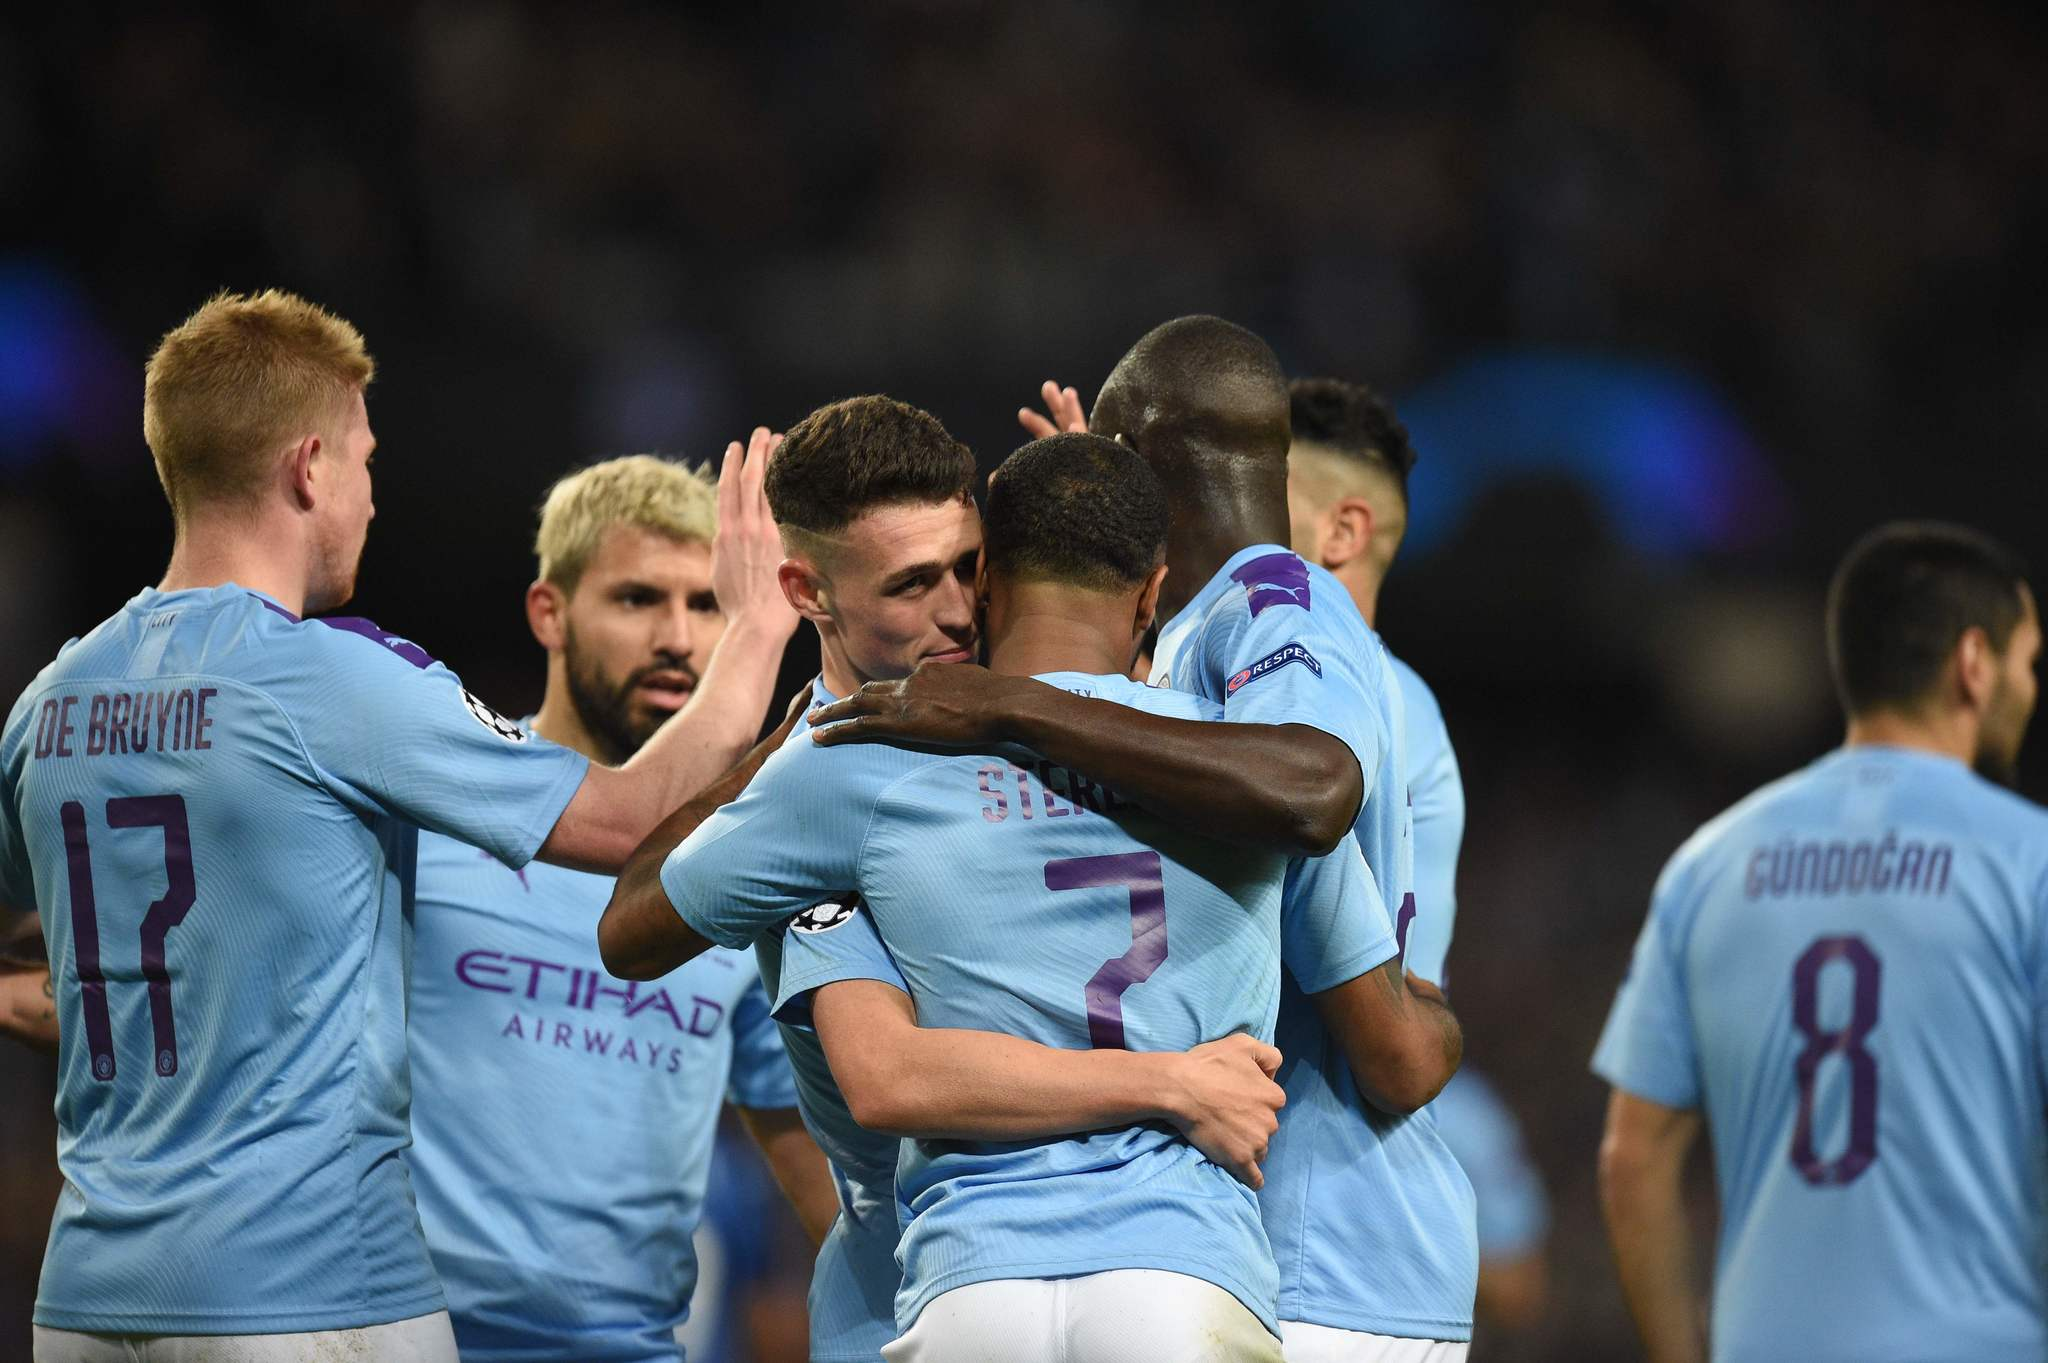 Manchester Citys English midfielder Raheem <HIT>Sterling</HIT> (C) is embraced by Manchester Citys English midfielder Phil Foden after <HIT>Sterling</HIT> scored their third goal during the UEFA Champions League Group C football match between Manchester City and Atalanta at the Etihad Stadium in Manchester, northwest England on October 22, 2019. (Photo by Oli SCARFF / AFP)